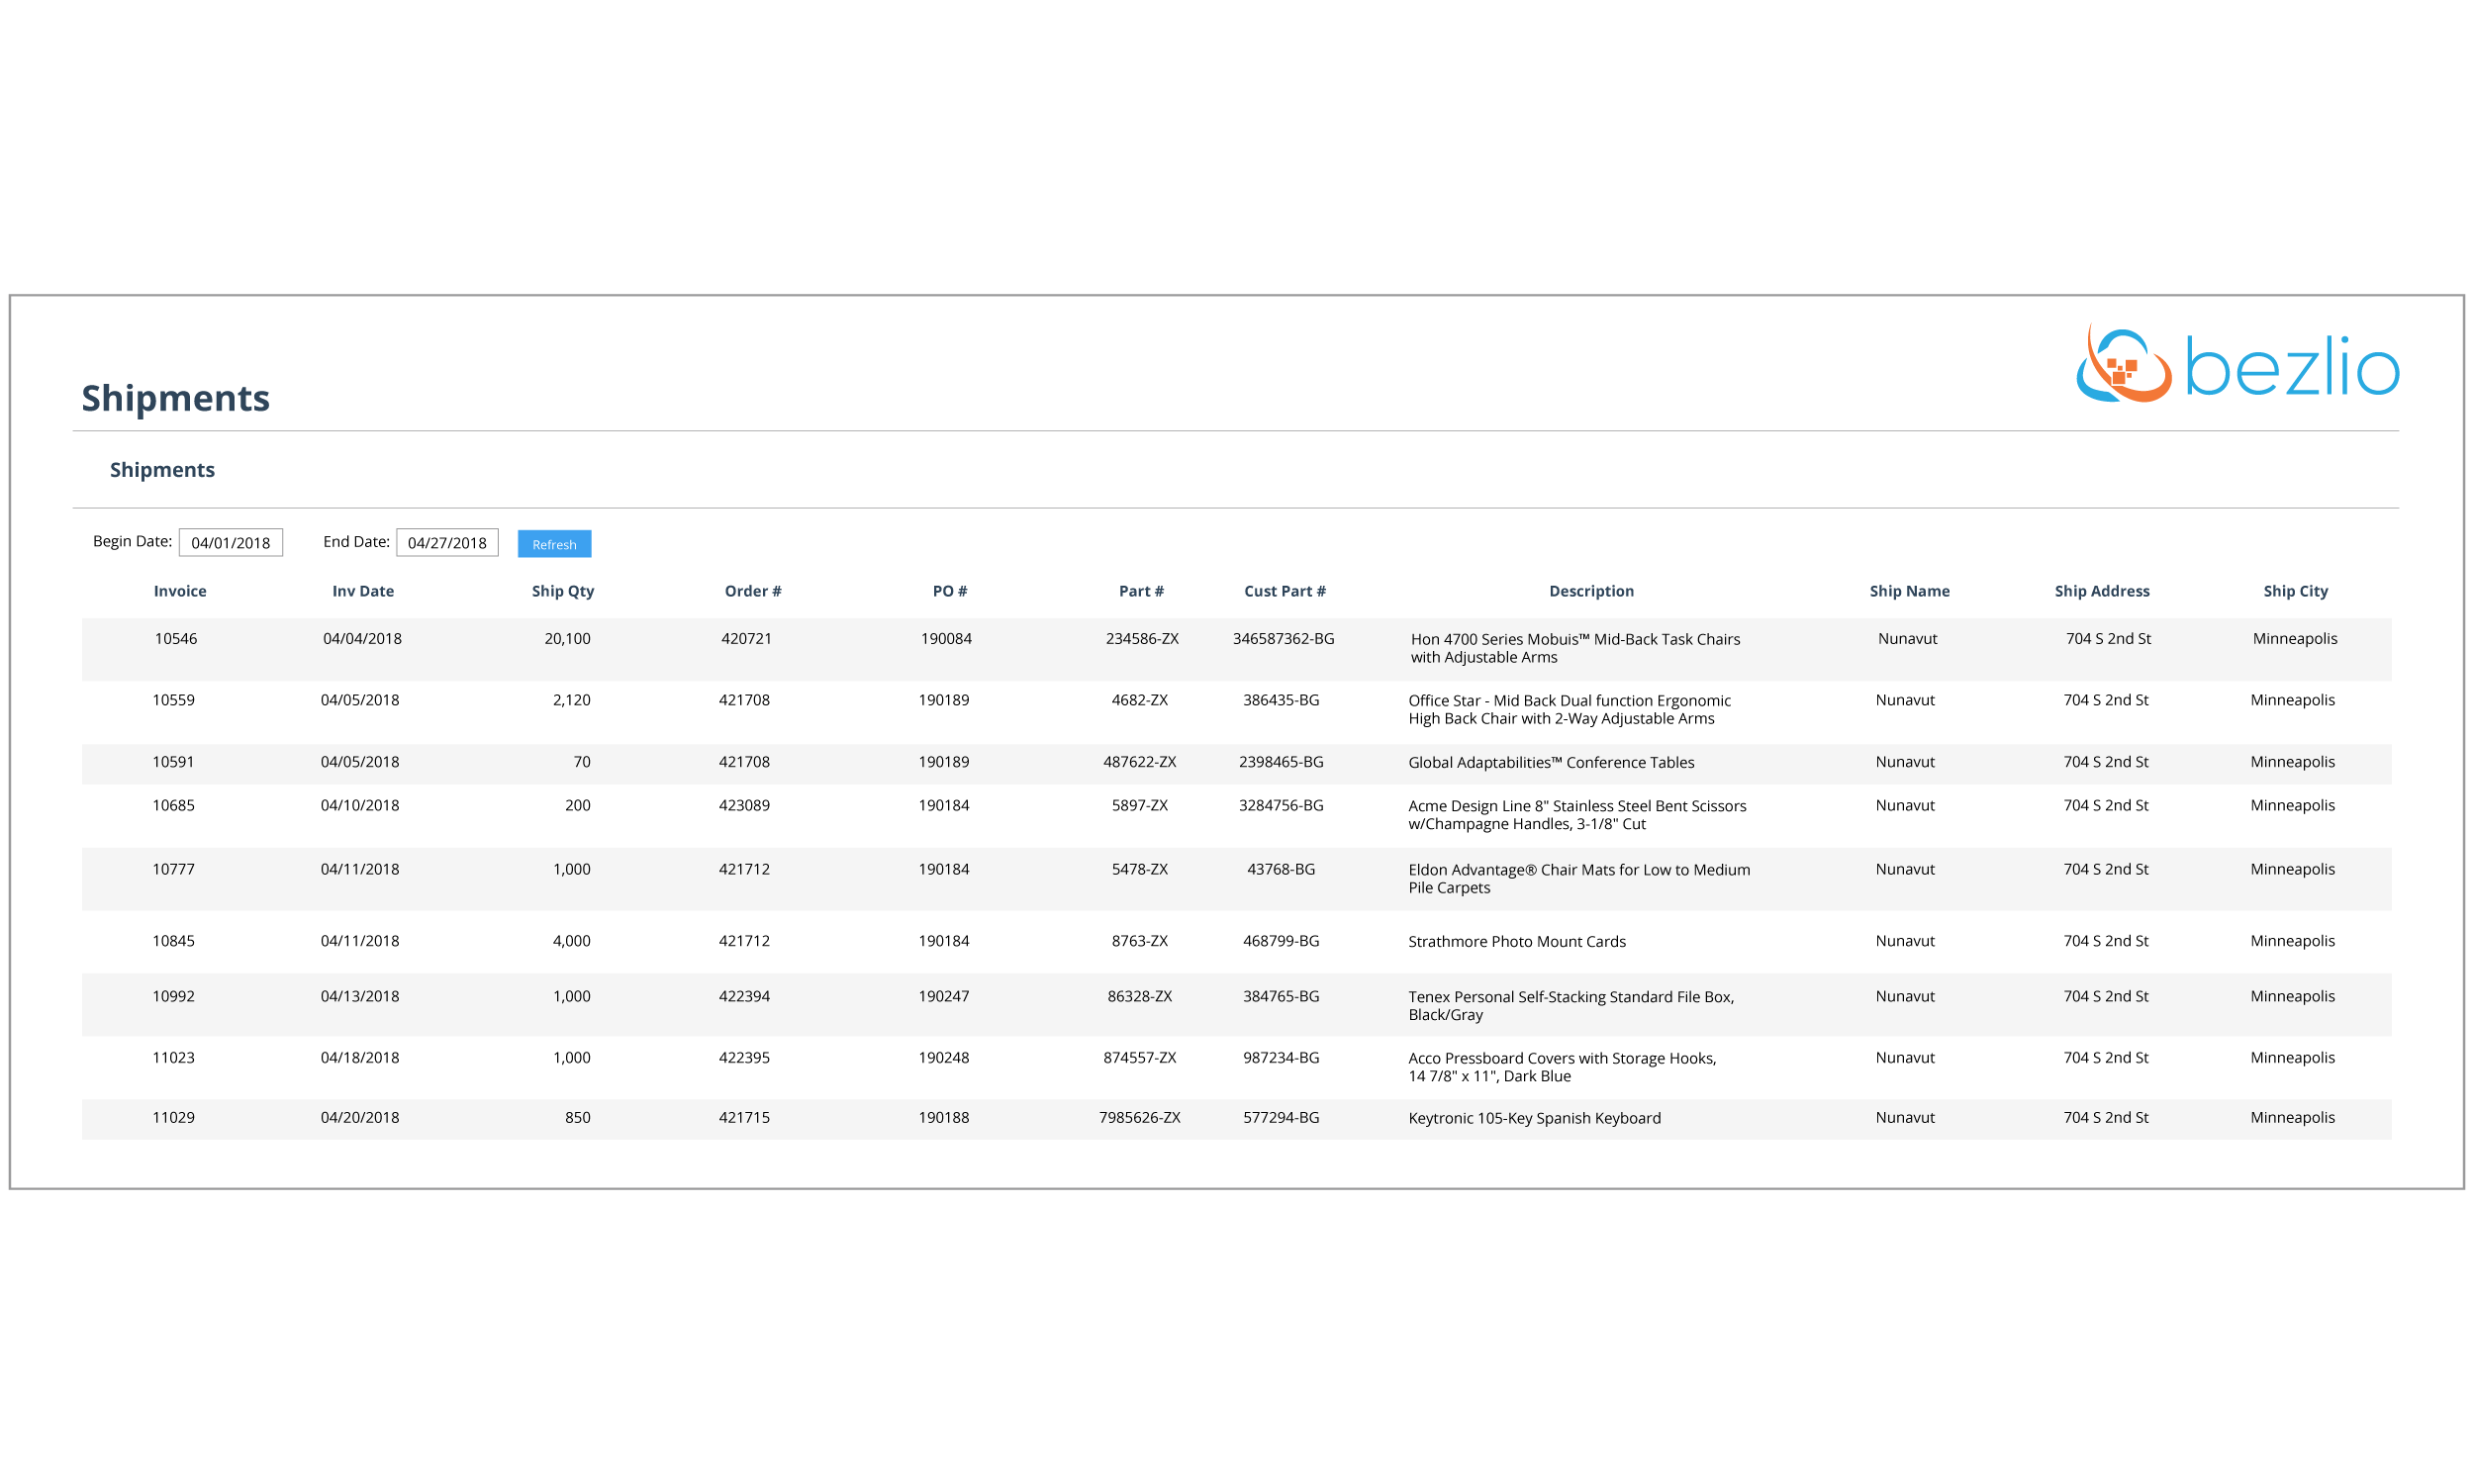 Screenshot from Bezlio's self-service customer portal screens that handle shipments. Allow customers to look up shipment records in real-time, straight from your on-premise database!